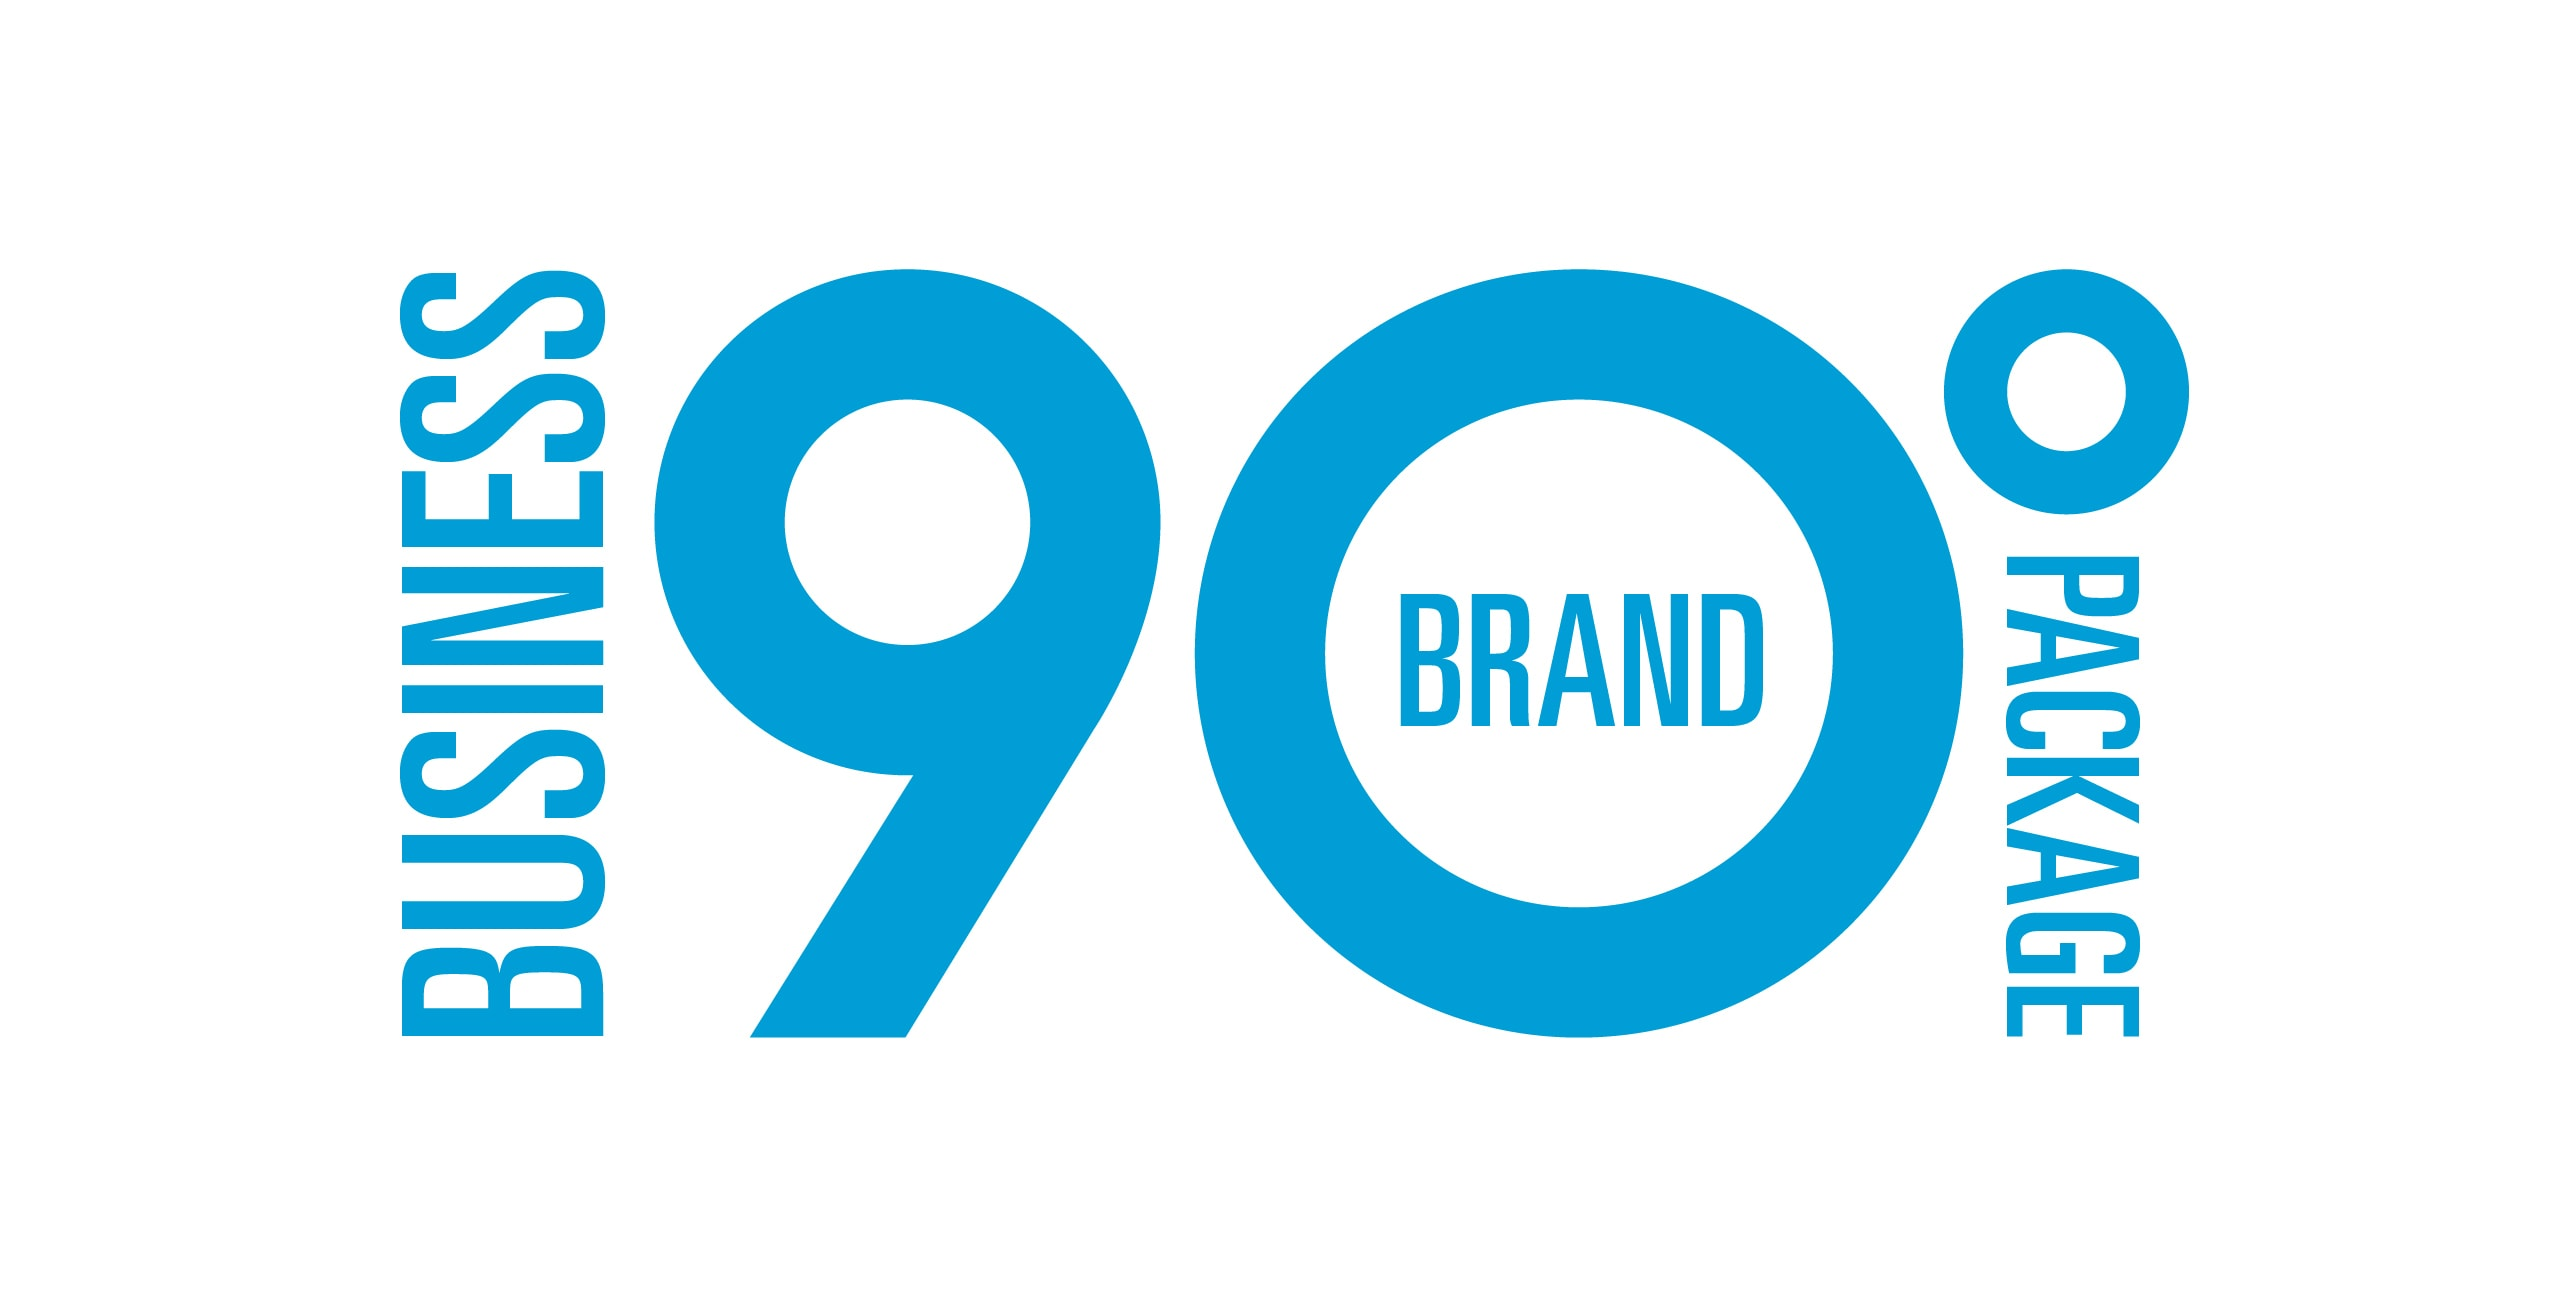 Right Angle Creative brand packages symbol design 90 business